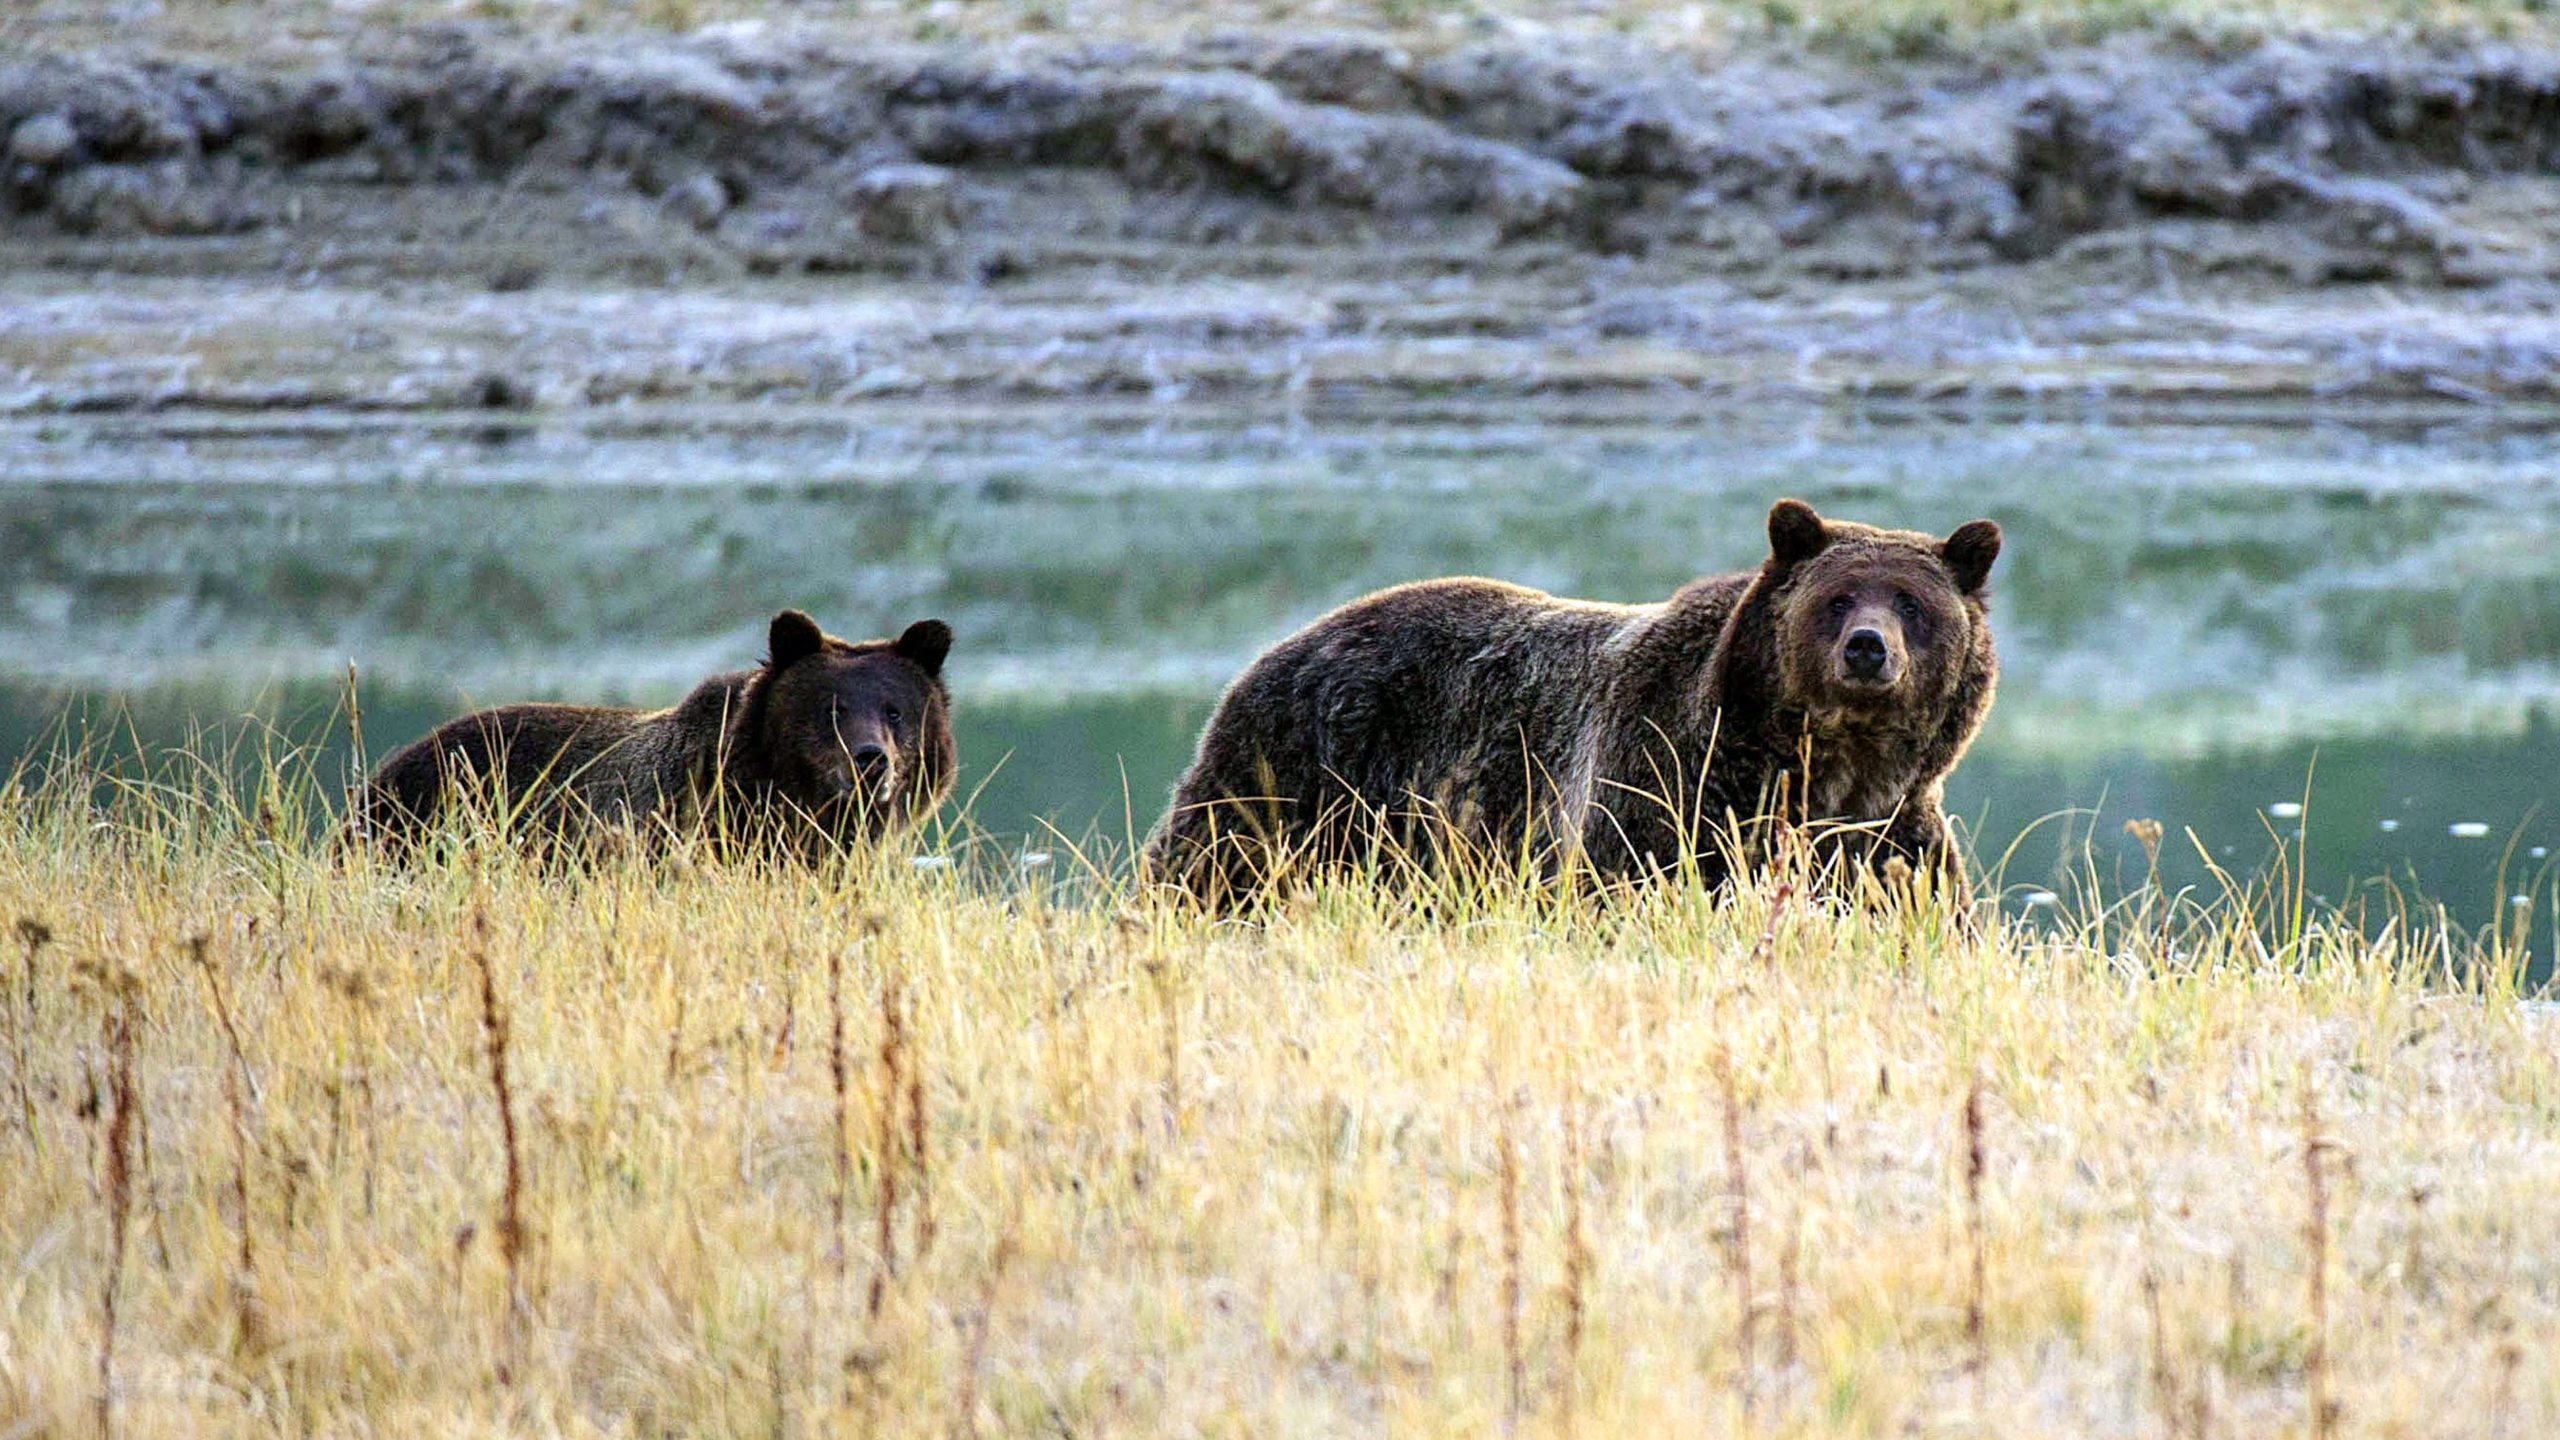 Grizzly bear kills camper in Montana